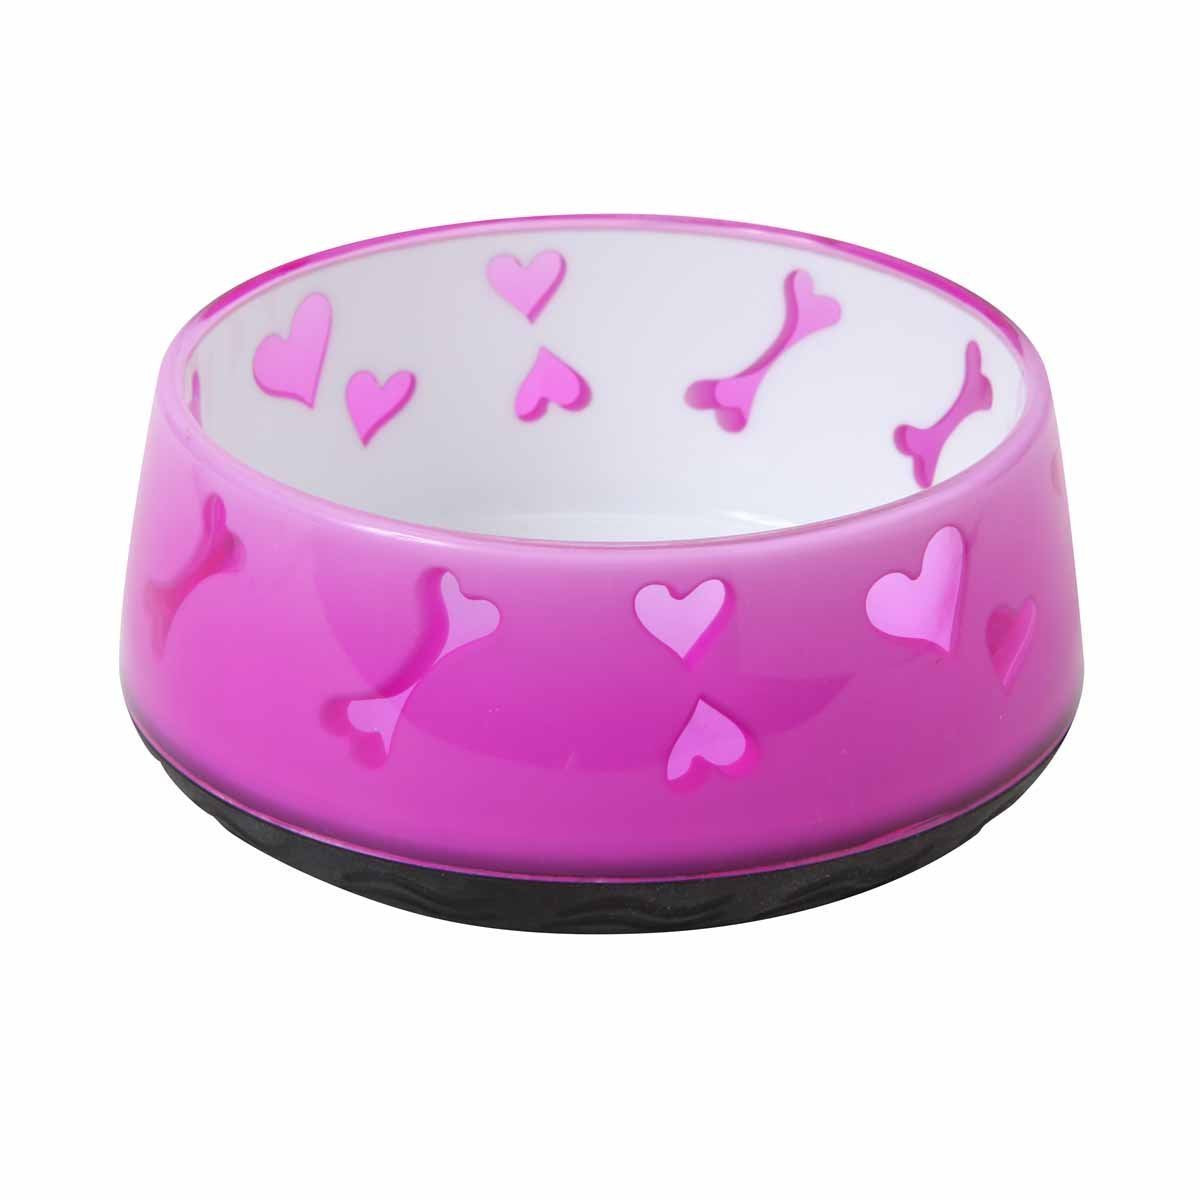 AFP Dog Love Bowl - Pink - M